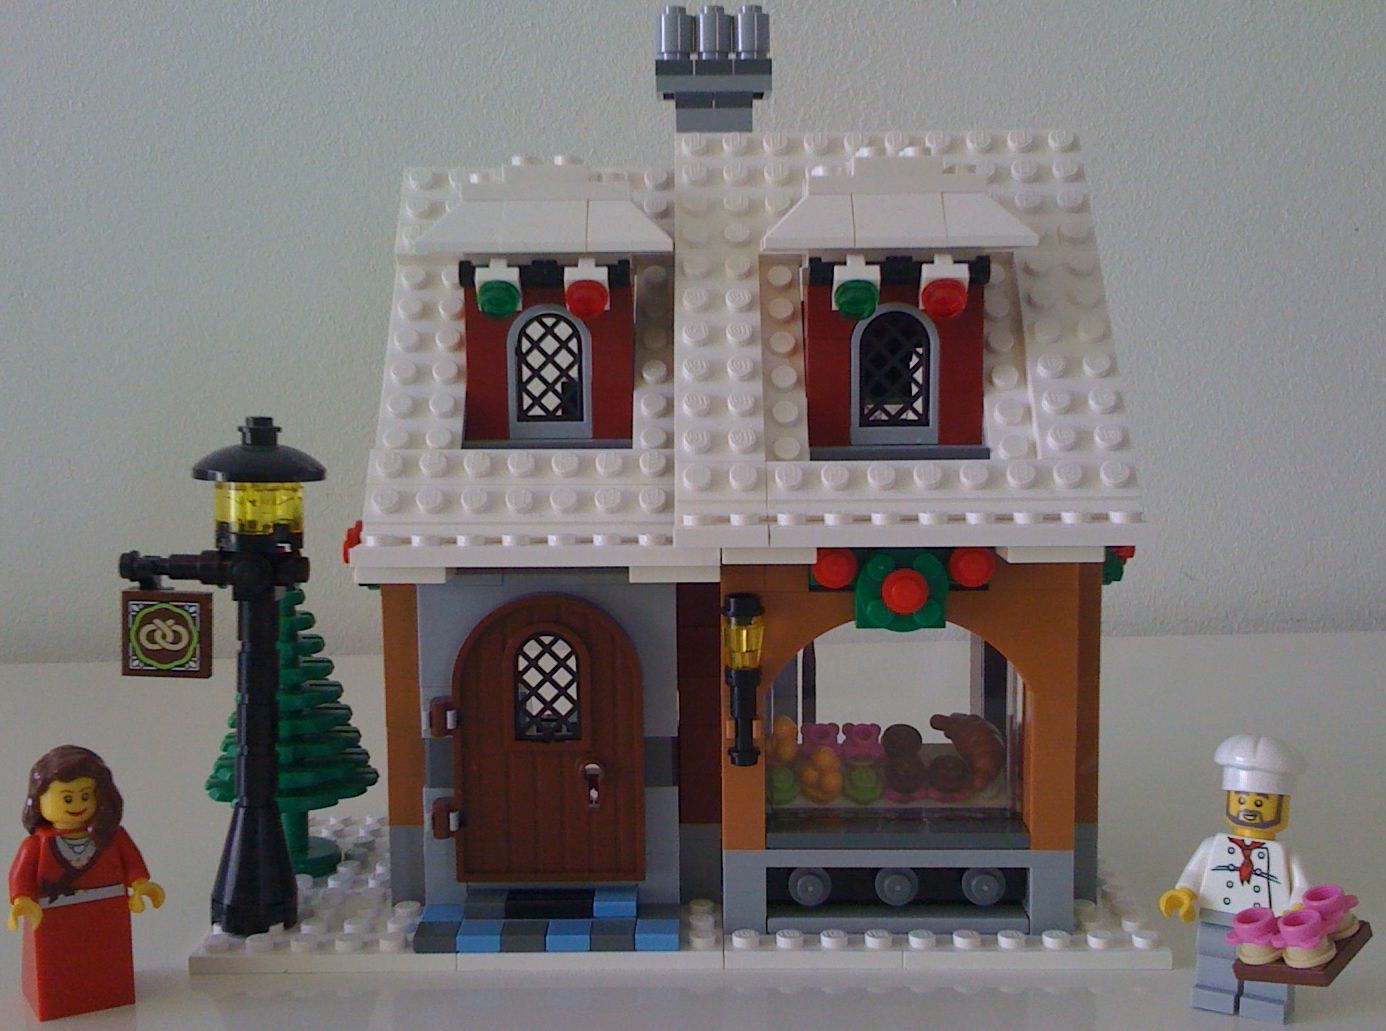 Lego 10216 Winter Village Bakery I Brick City